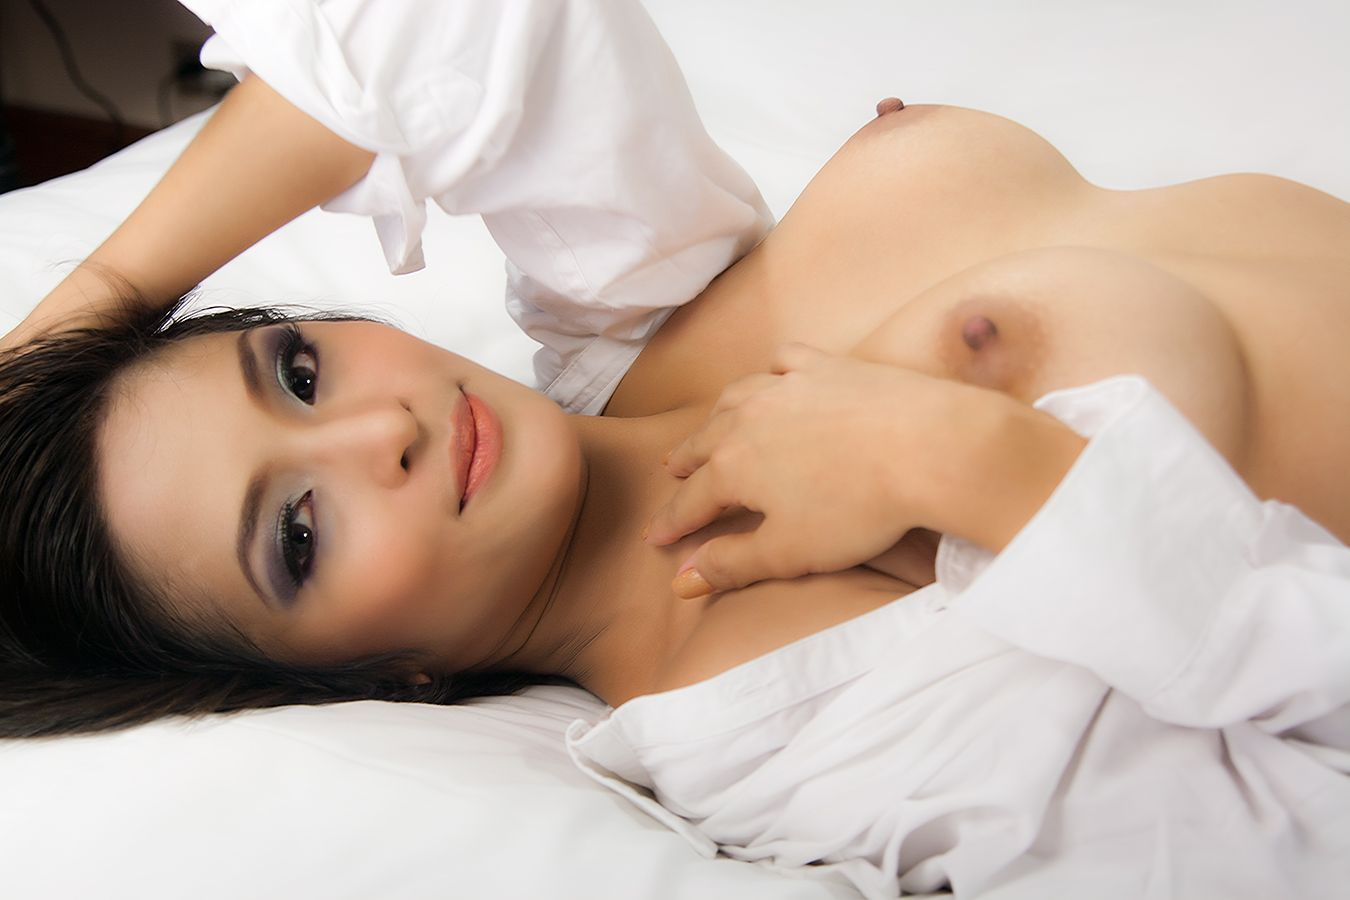 sexy-actress-nude-indonesia-xxx-mins-hardcore-blowjobs